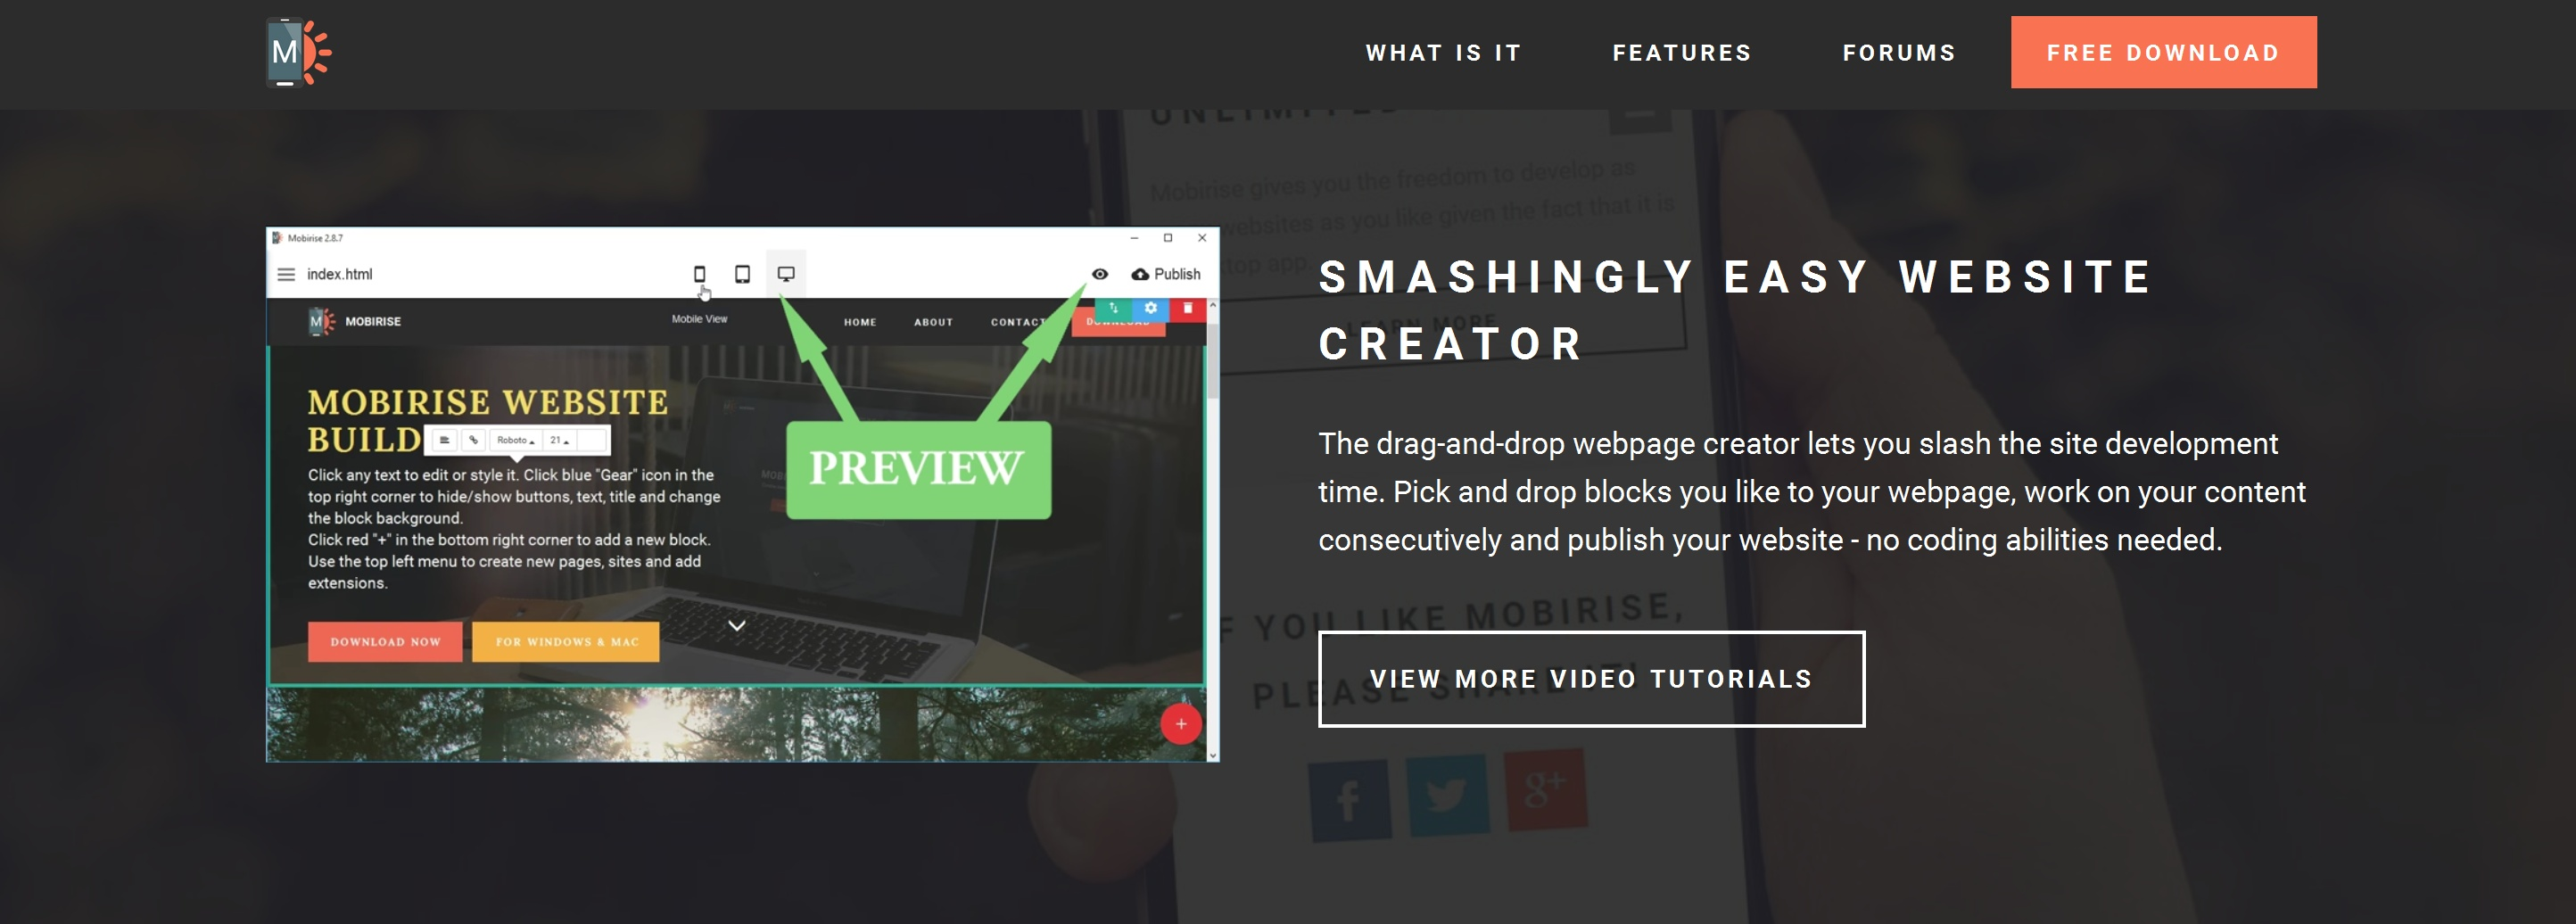 Drag and Drop Web Page  Creator Review